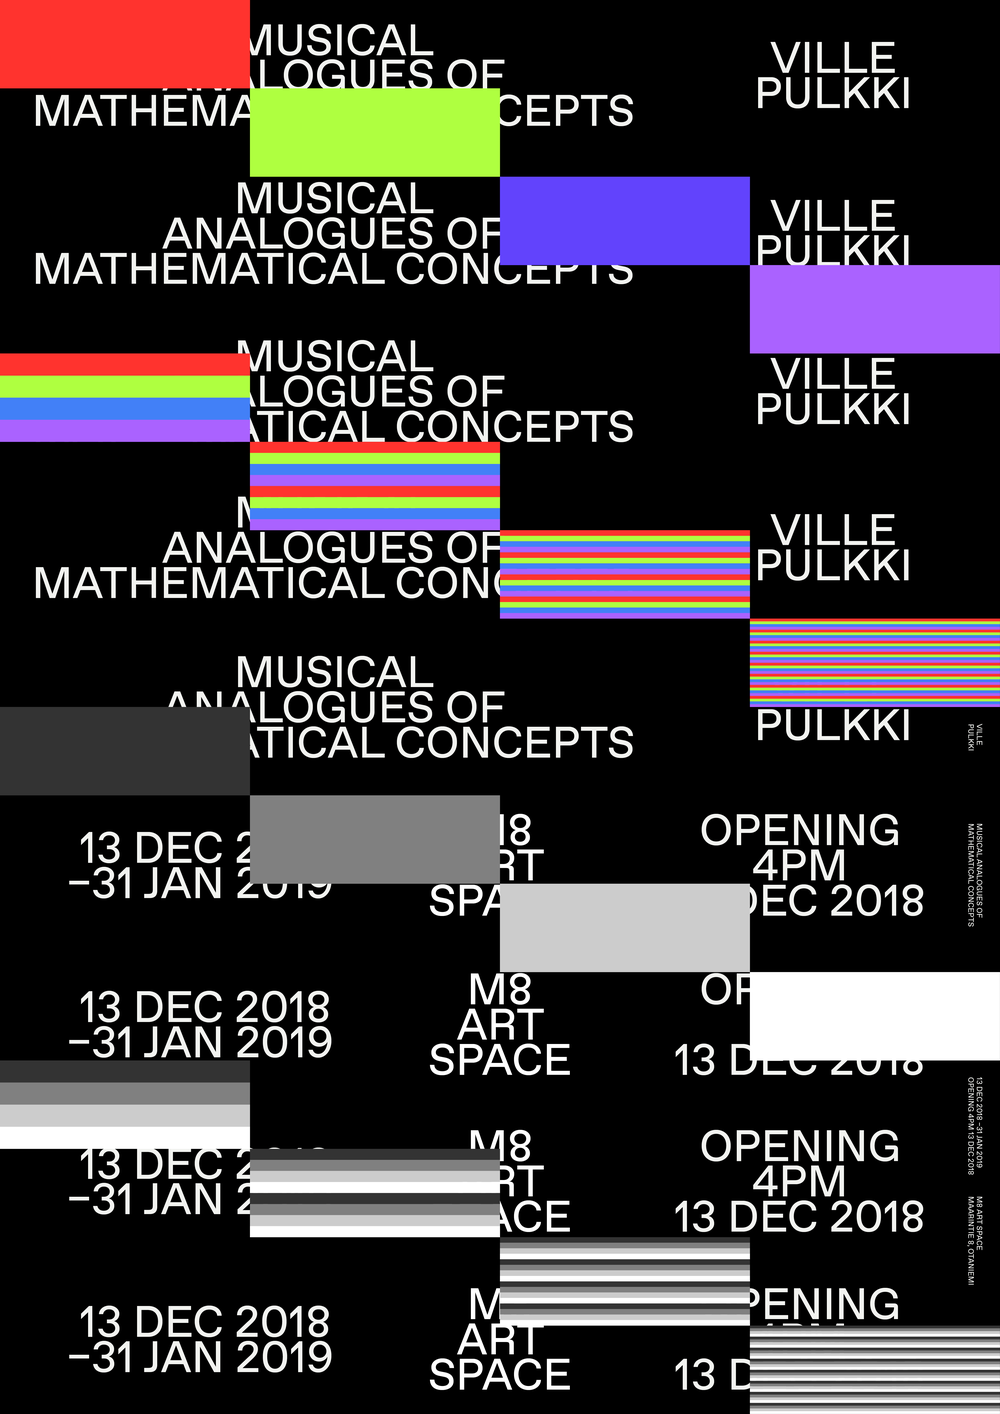 Musical Analogues of Mathematical Concepts Poster // Design: Joosung Kang